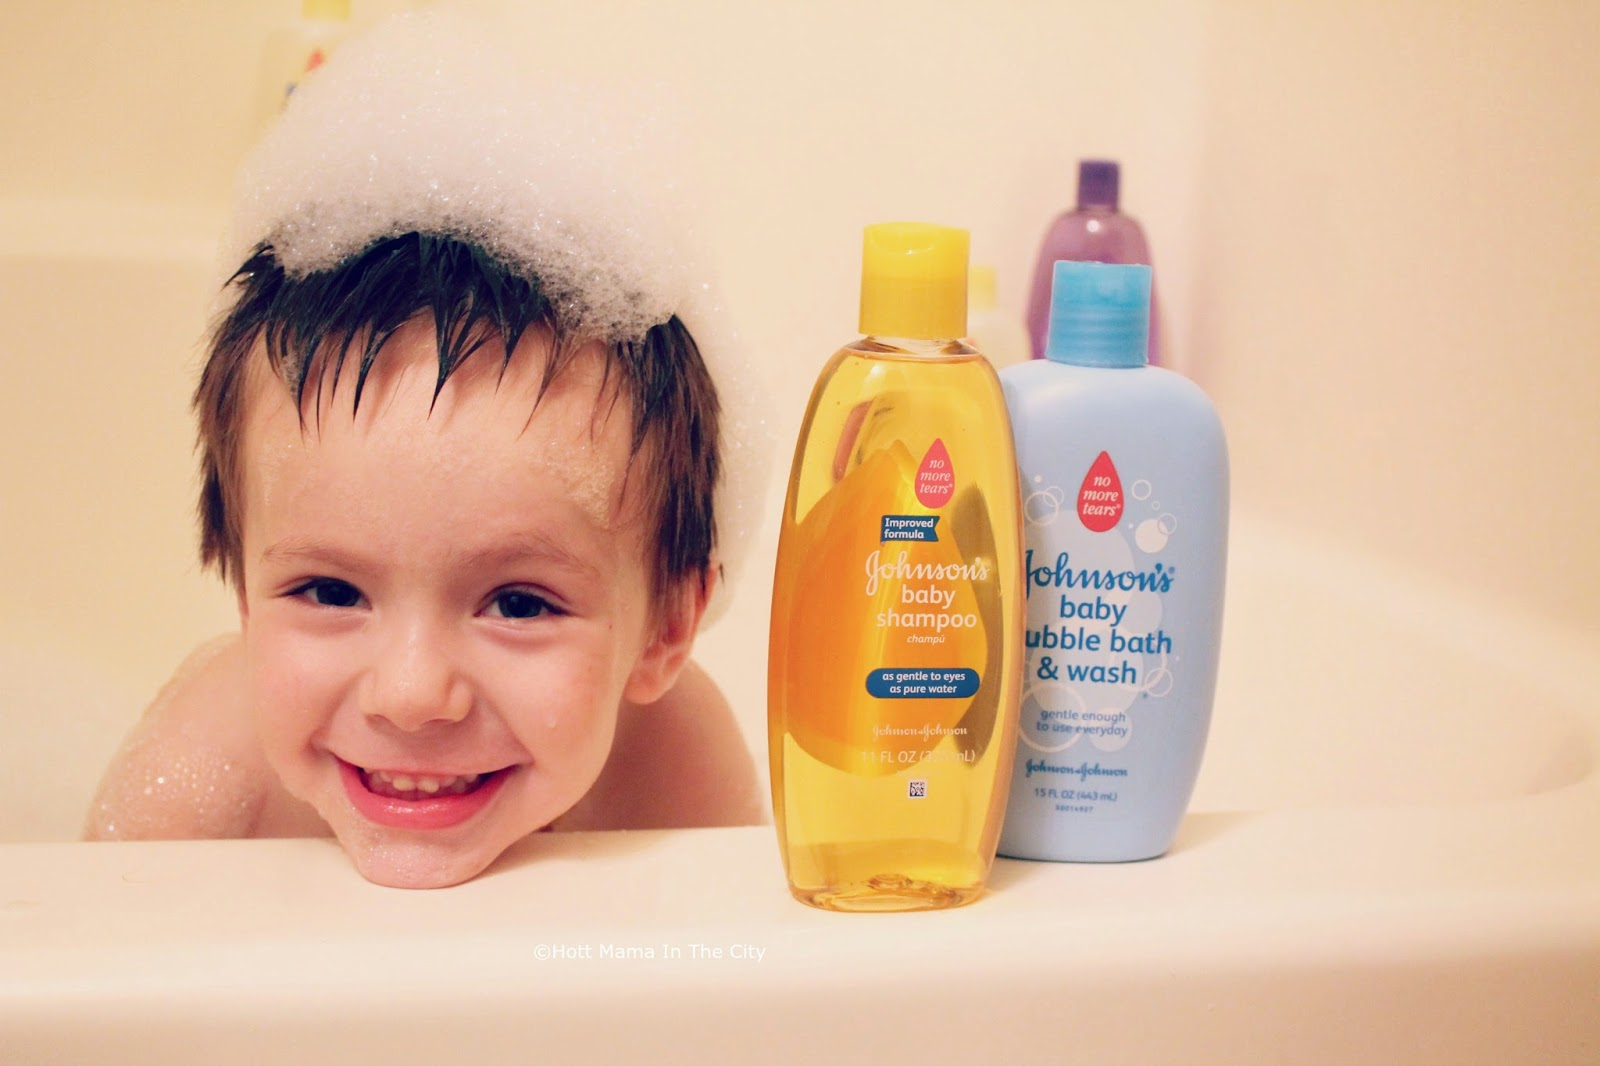 hot mama in the city how bath time can help healthy baby development the johnson s so much more campaign is about enhancing rituals including bath time to stimulate baby s senses and provide parents an opportunity to